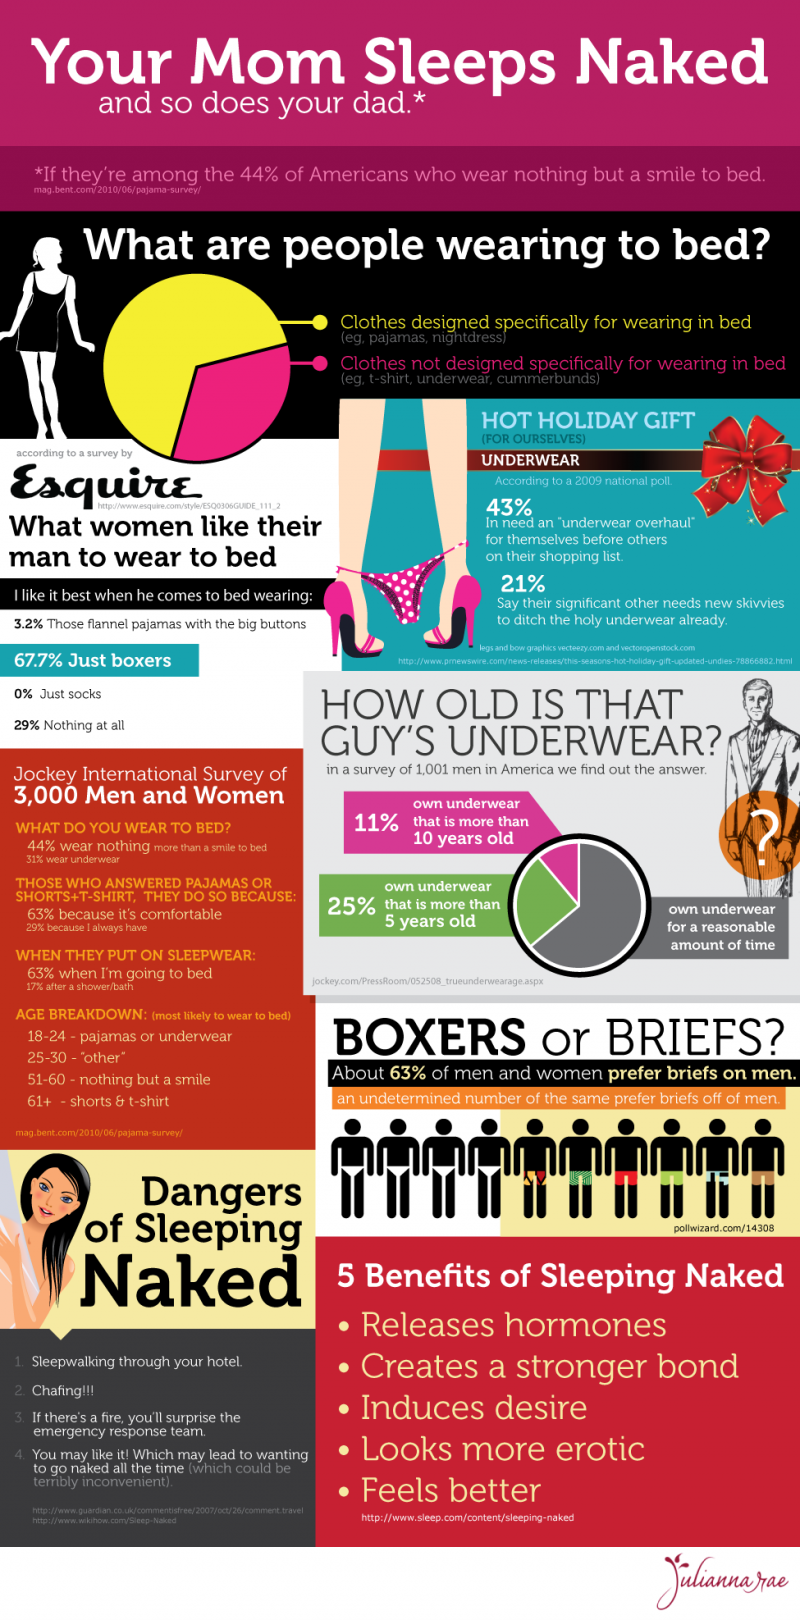 Your mom sleeps naked so does your dad #infographic